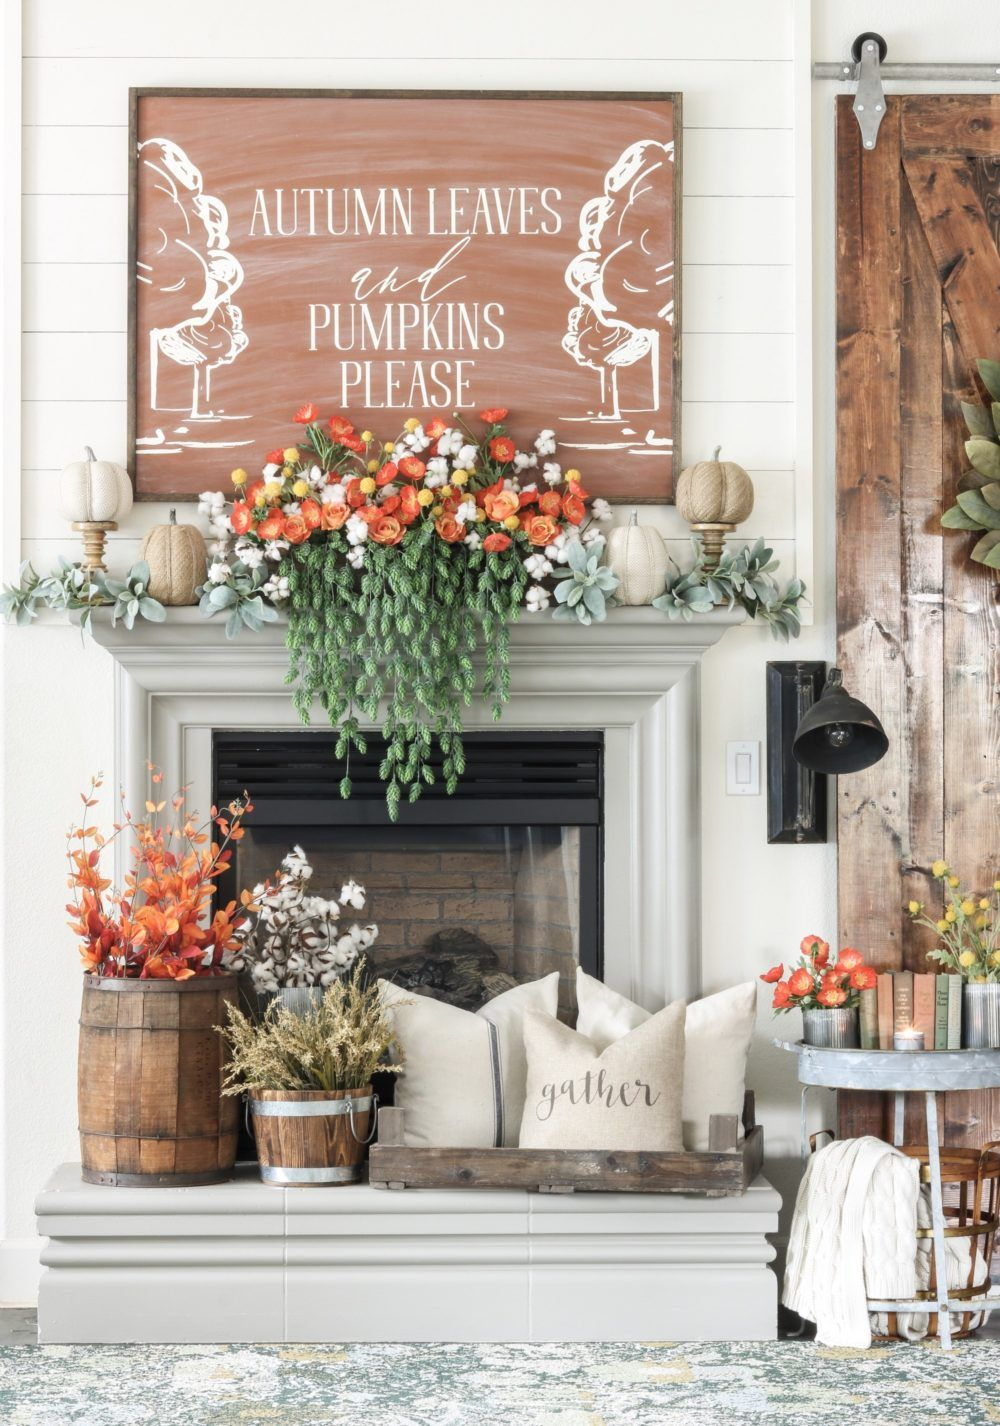 10 Fall Mantel Ideas That Are Seriously Inspiring Joyfully Growing Fall Mantel Decorations Fall Fireplace Fireplace Mantel Decor